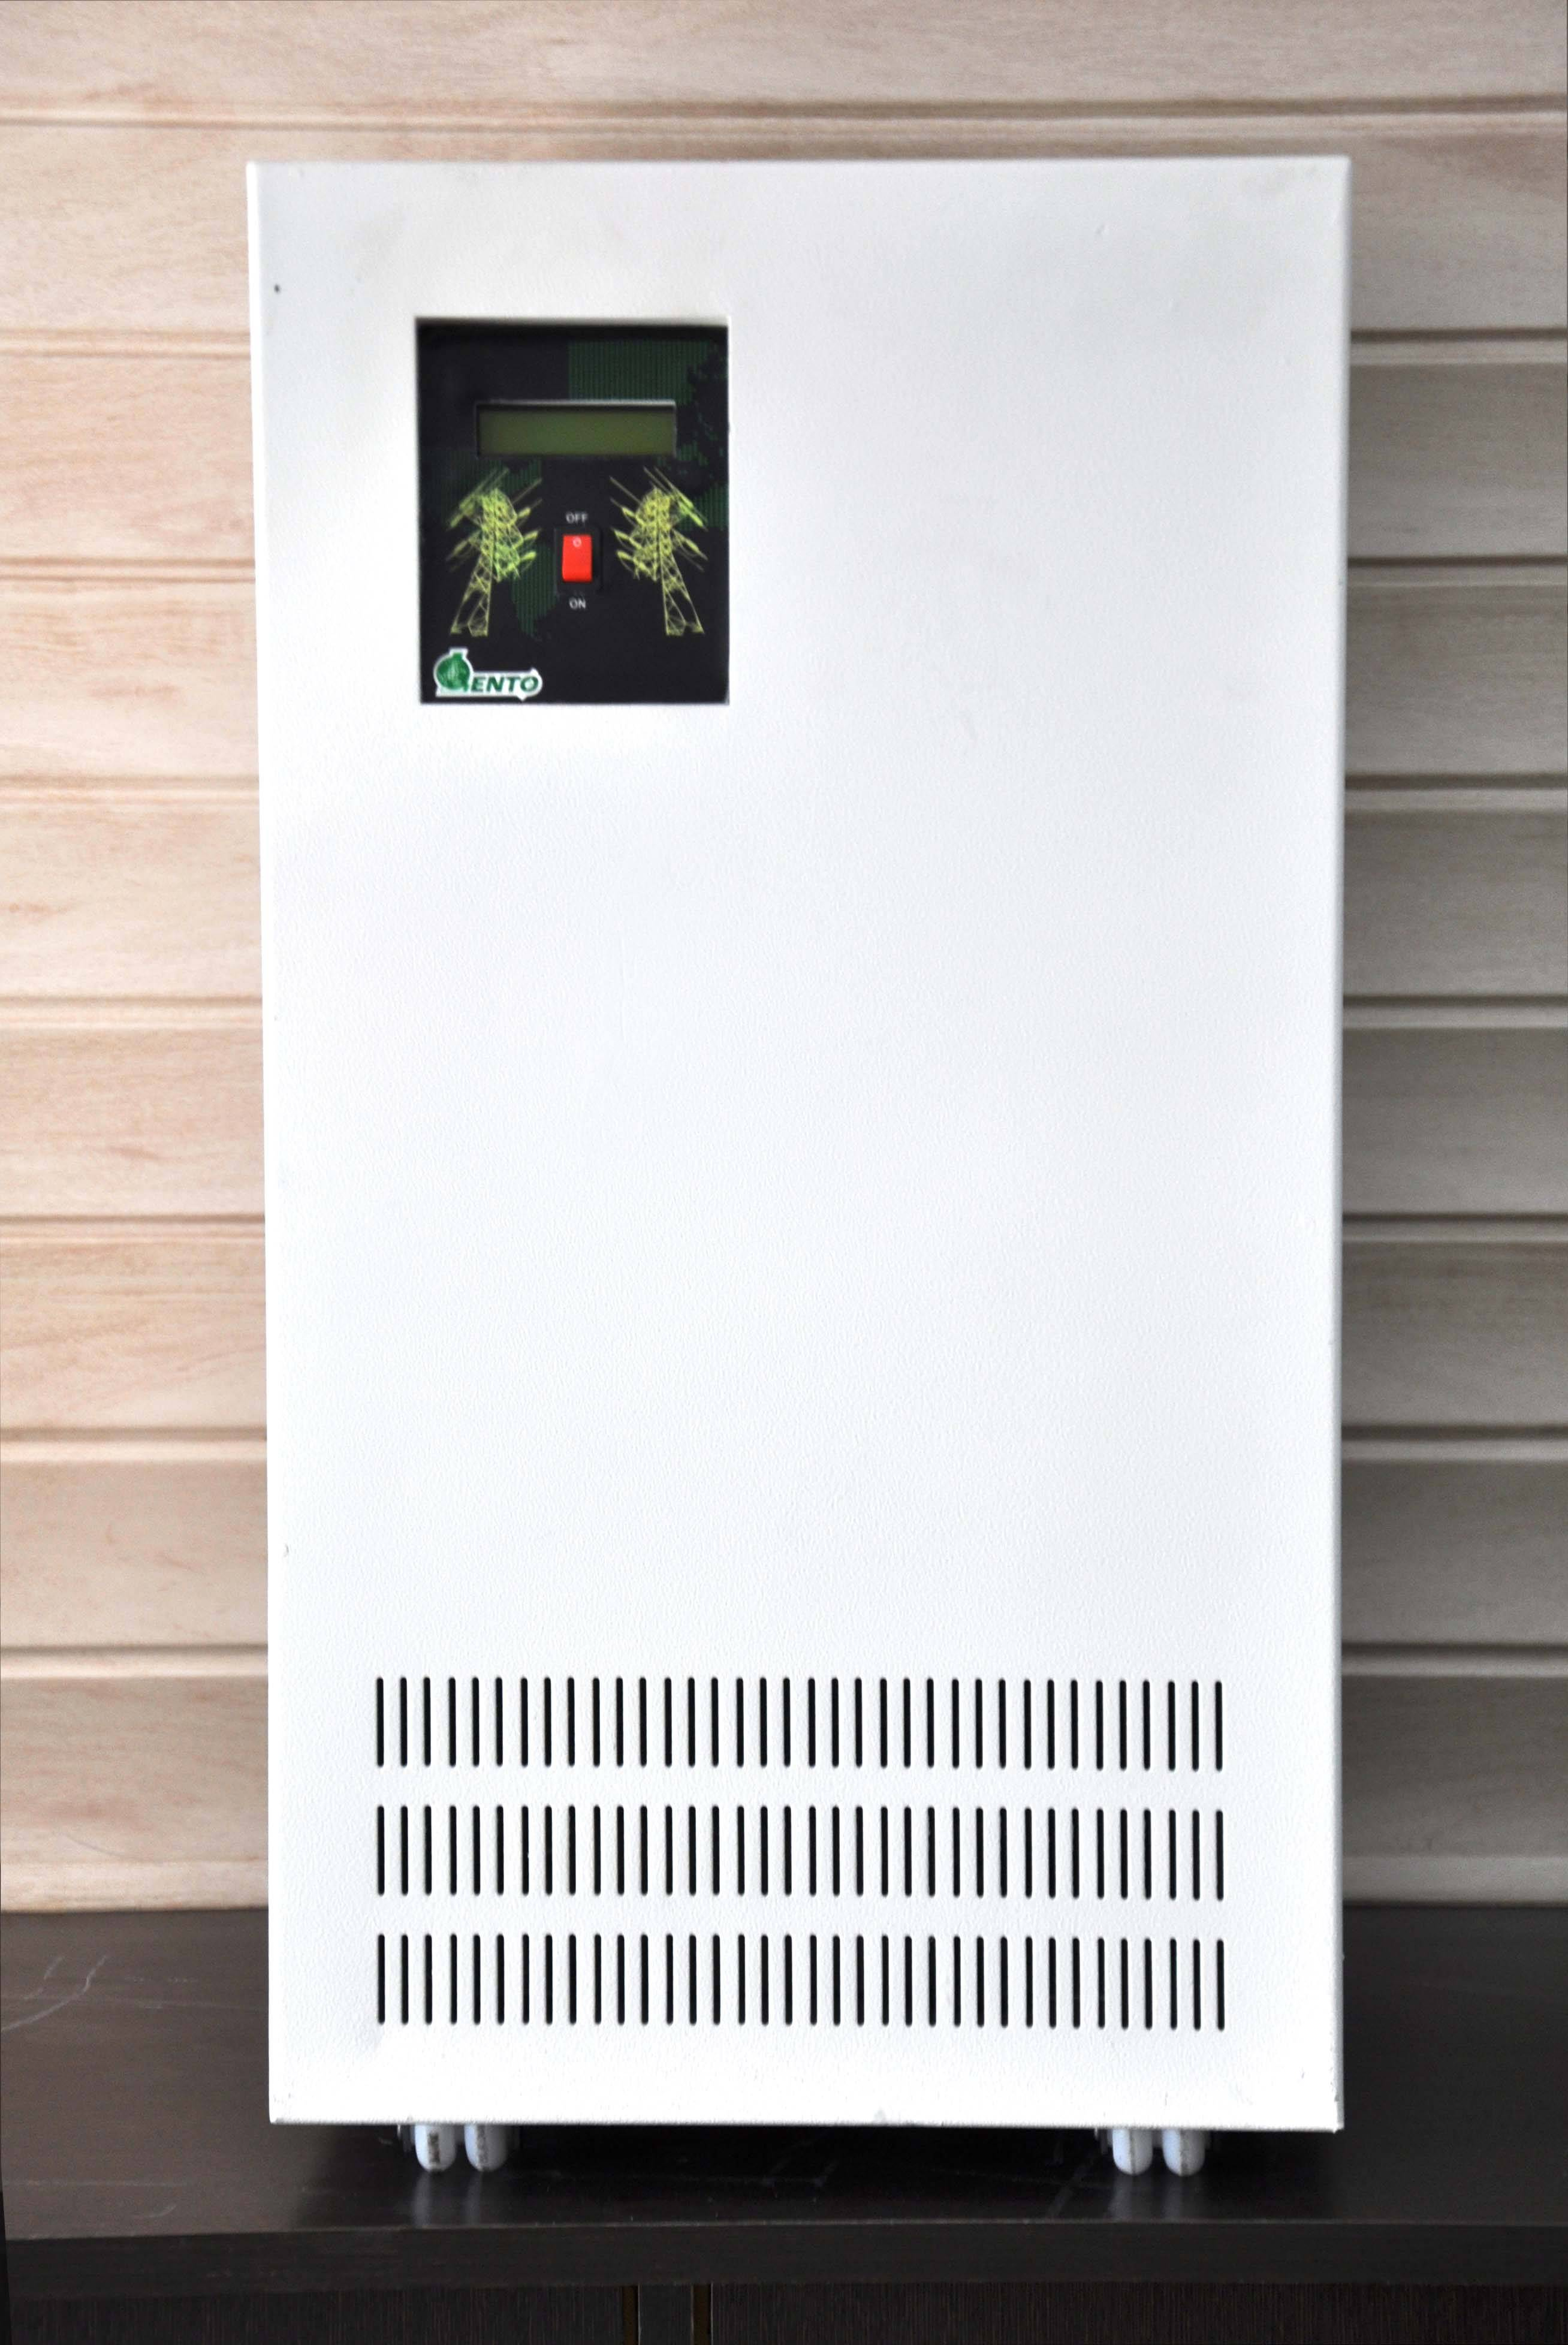 35kva 48v Solar Inverter Lento Industries Prevate Limited Battery Charger Circuit With High Low Cutoff